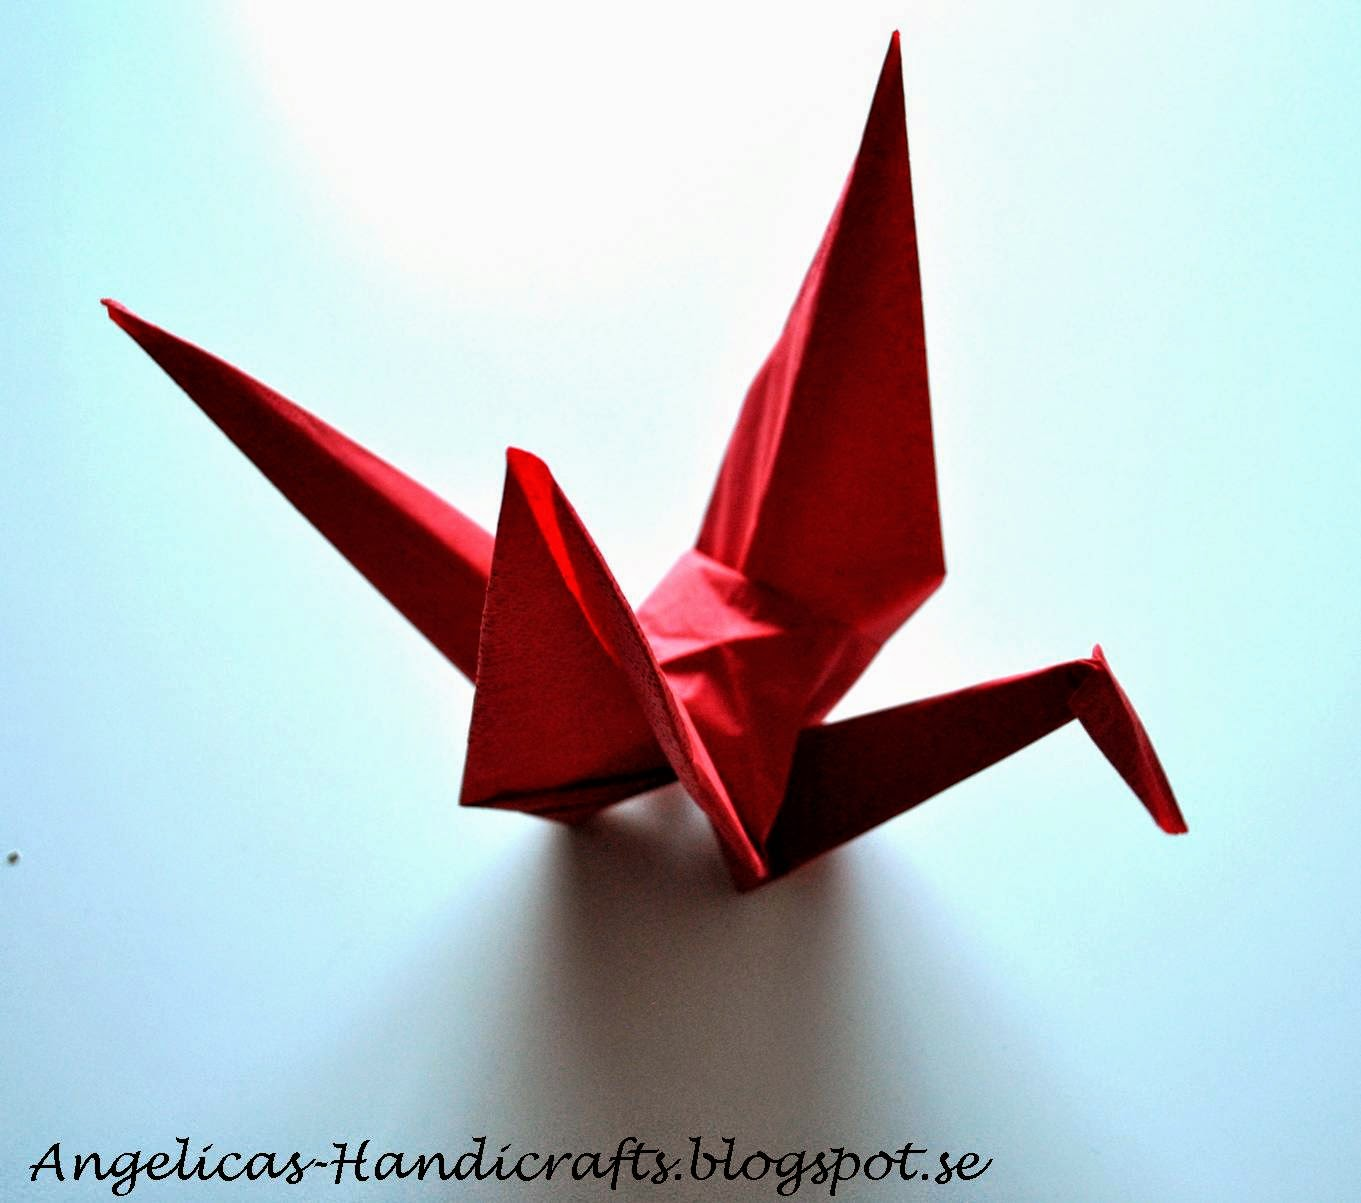 Origami Crane folding instructions | Origami crane tutorial ... | 1203x1361